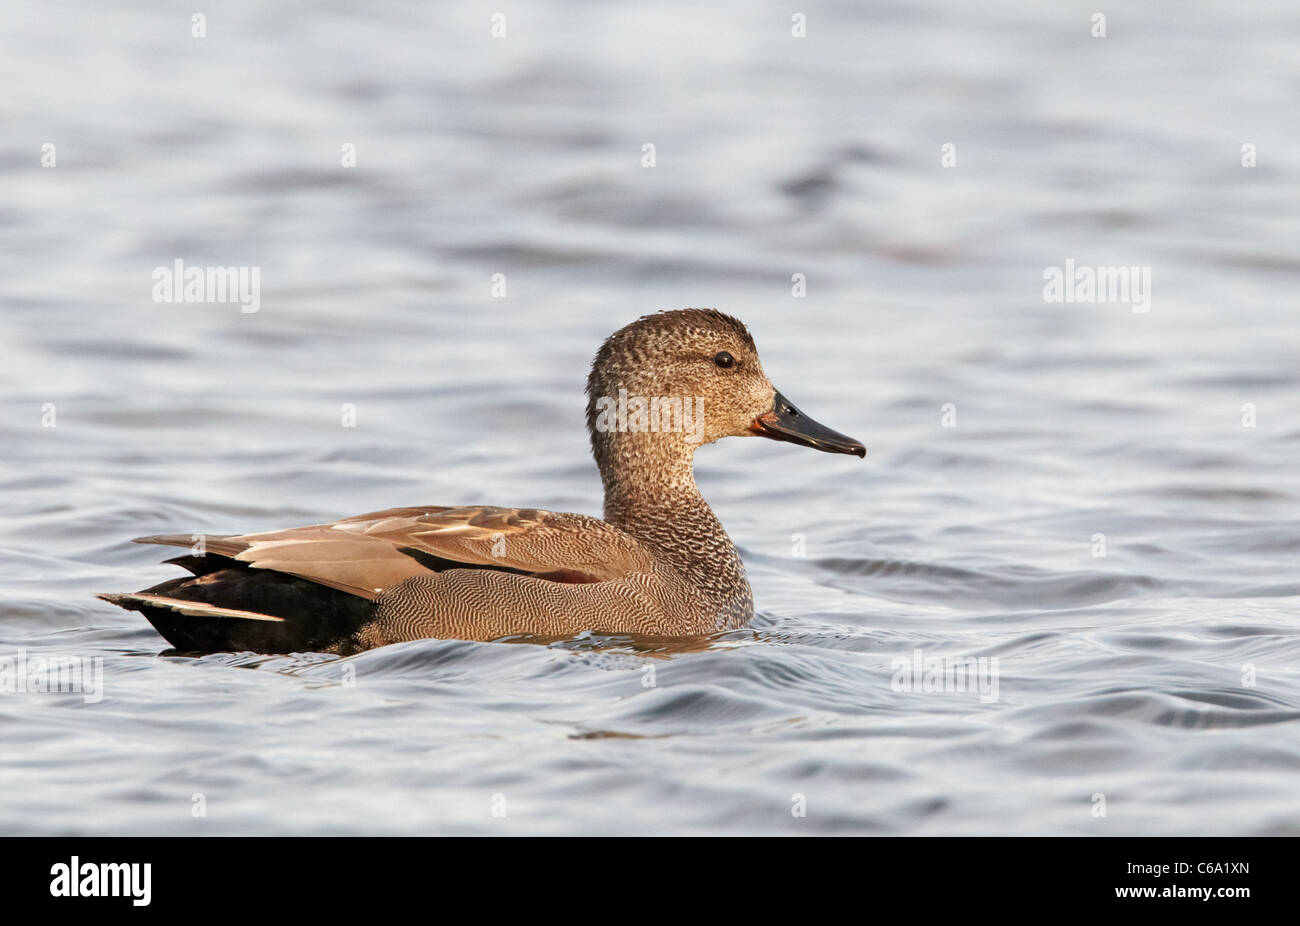 Gadwall (Anas strepera), drake on water. - Stock Image